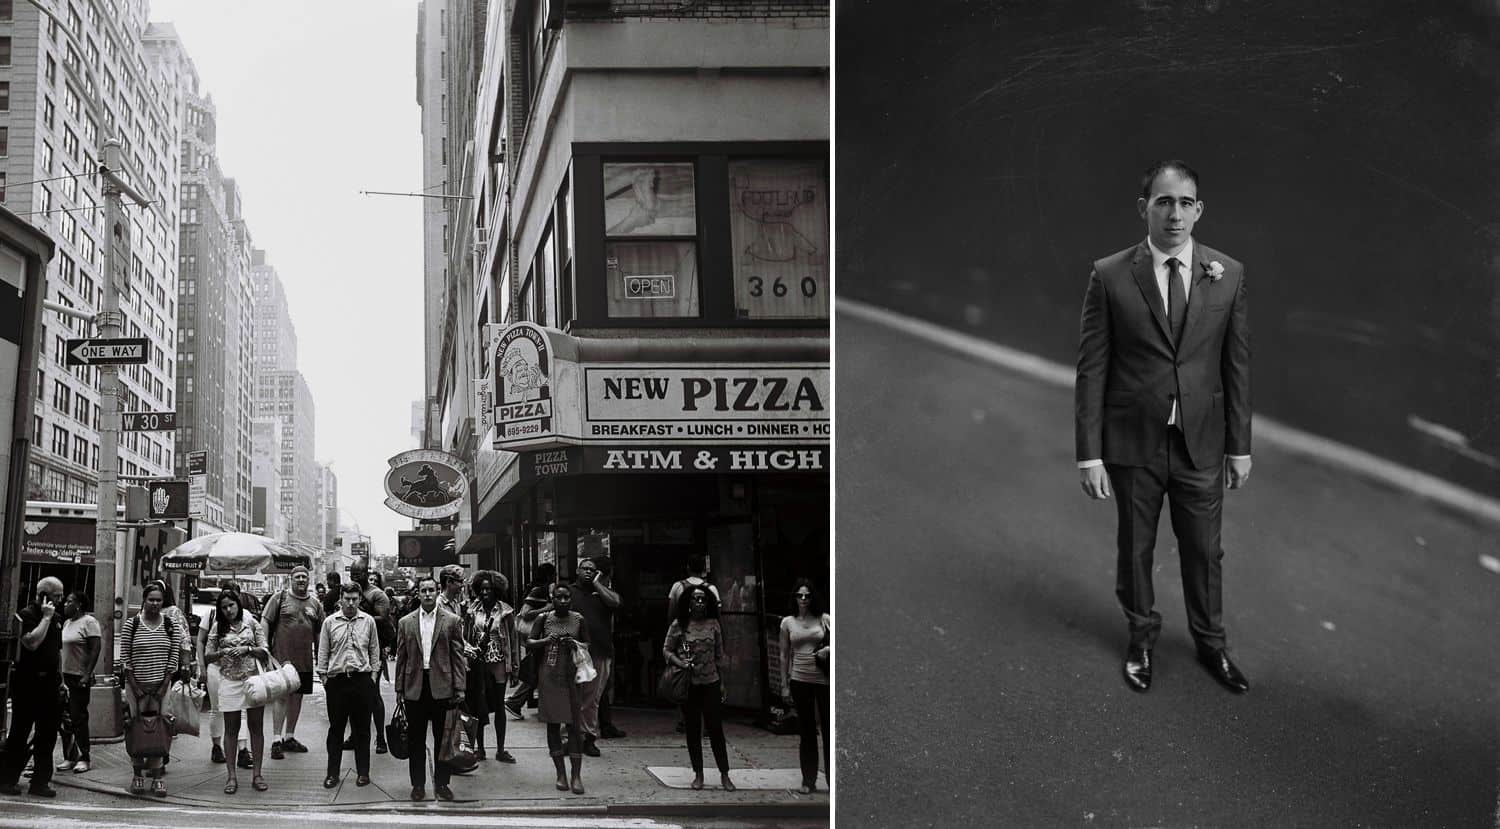 Authenticity Is Dead and Everything Is Wonderful: City Sidewalks & Businessmen In Black & White By Oli Sansom